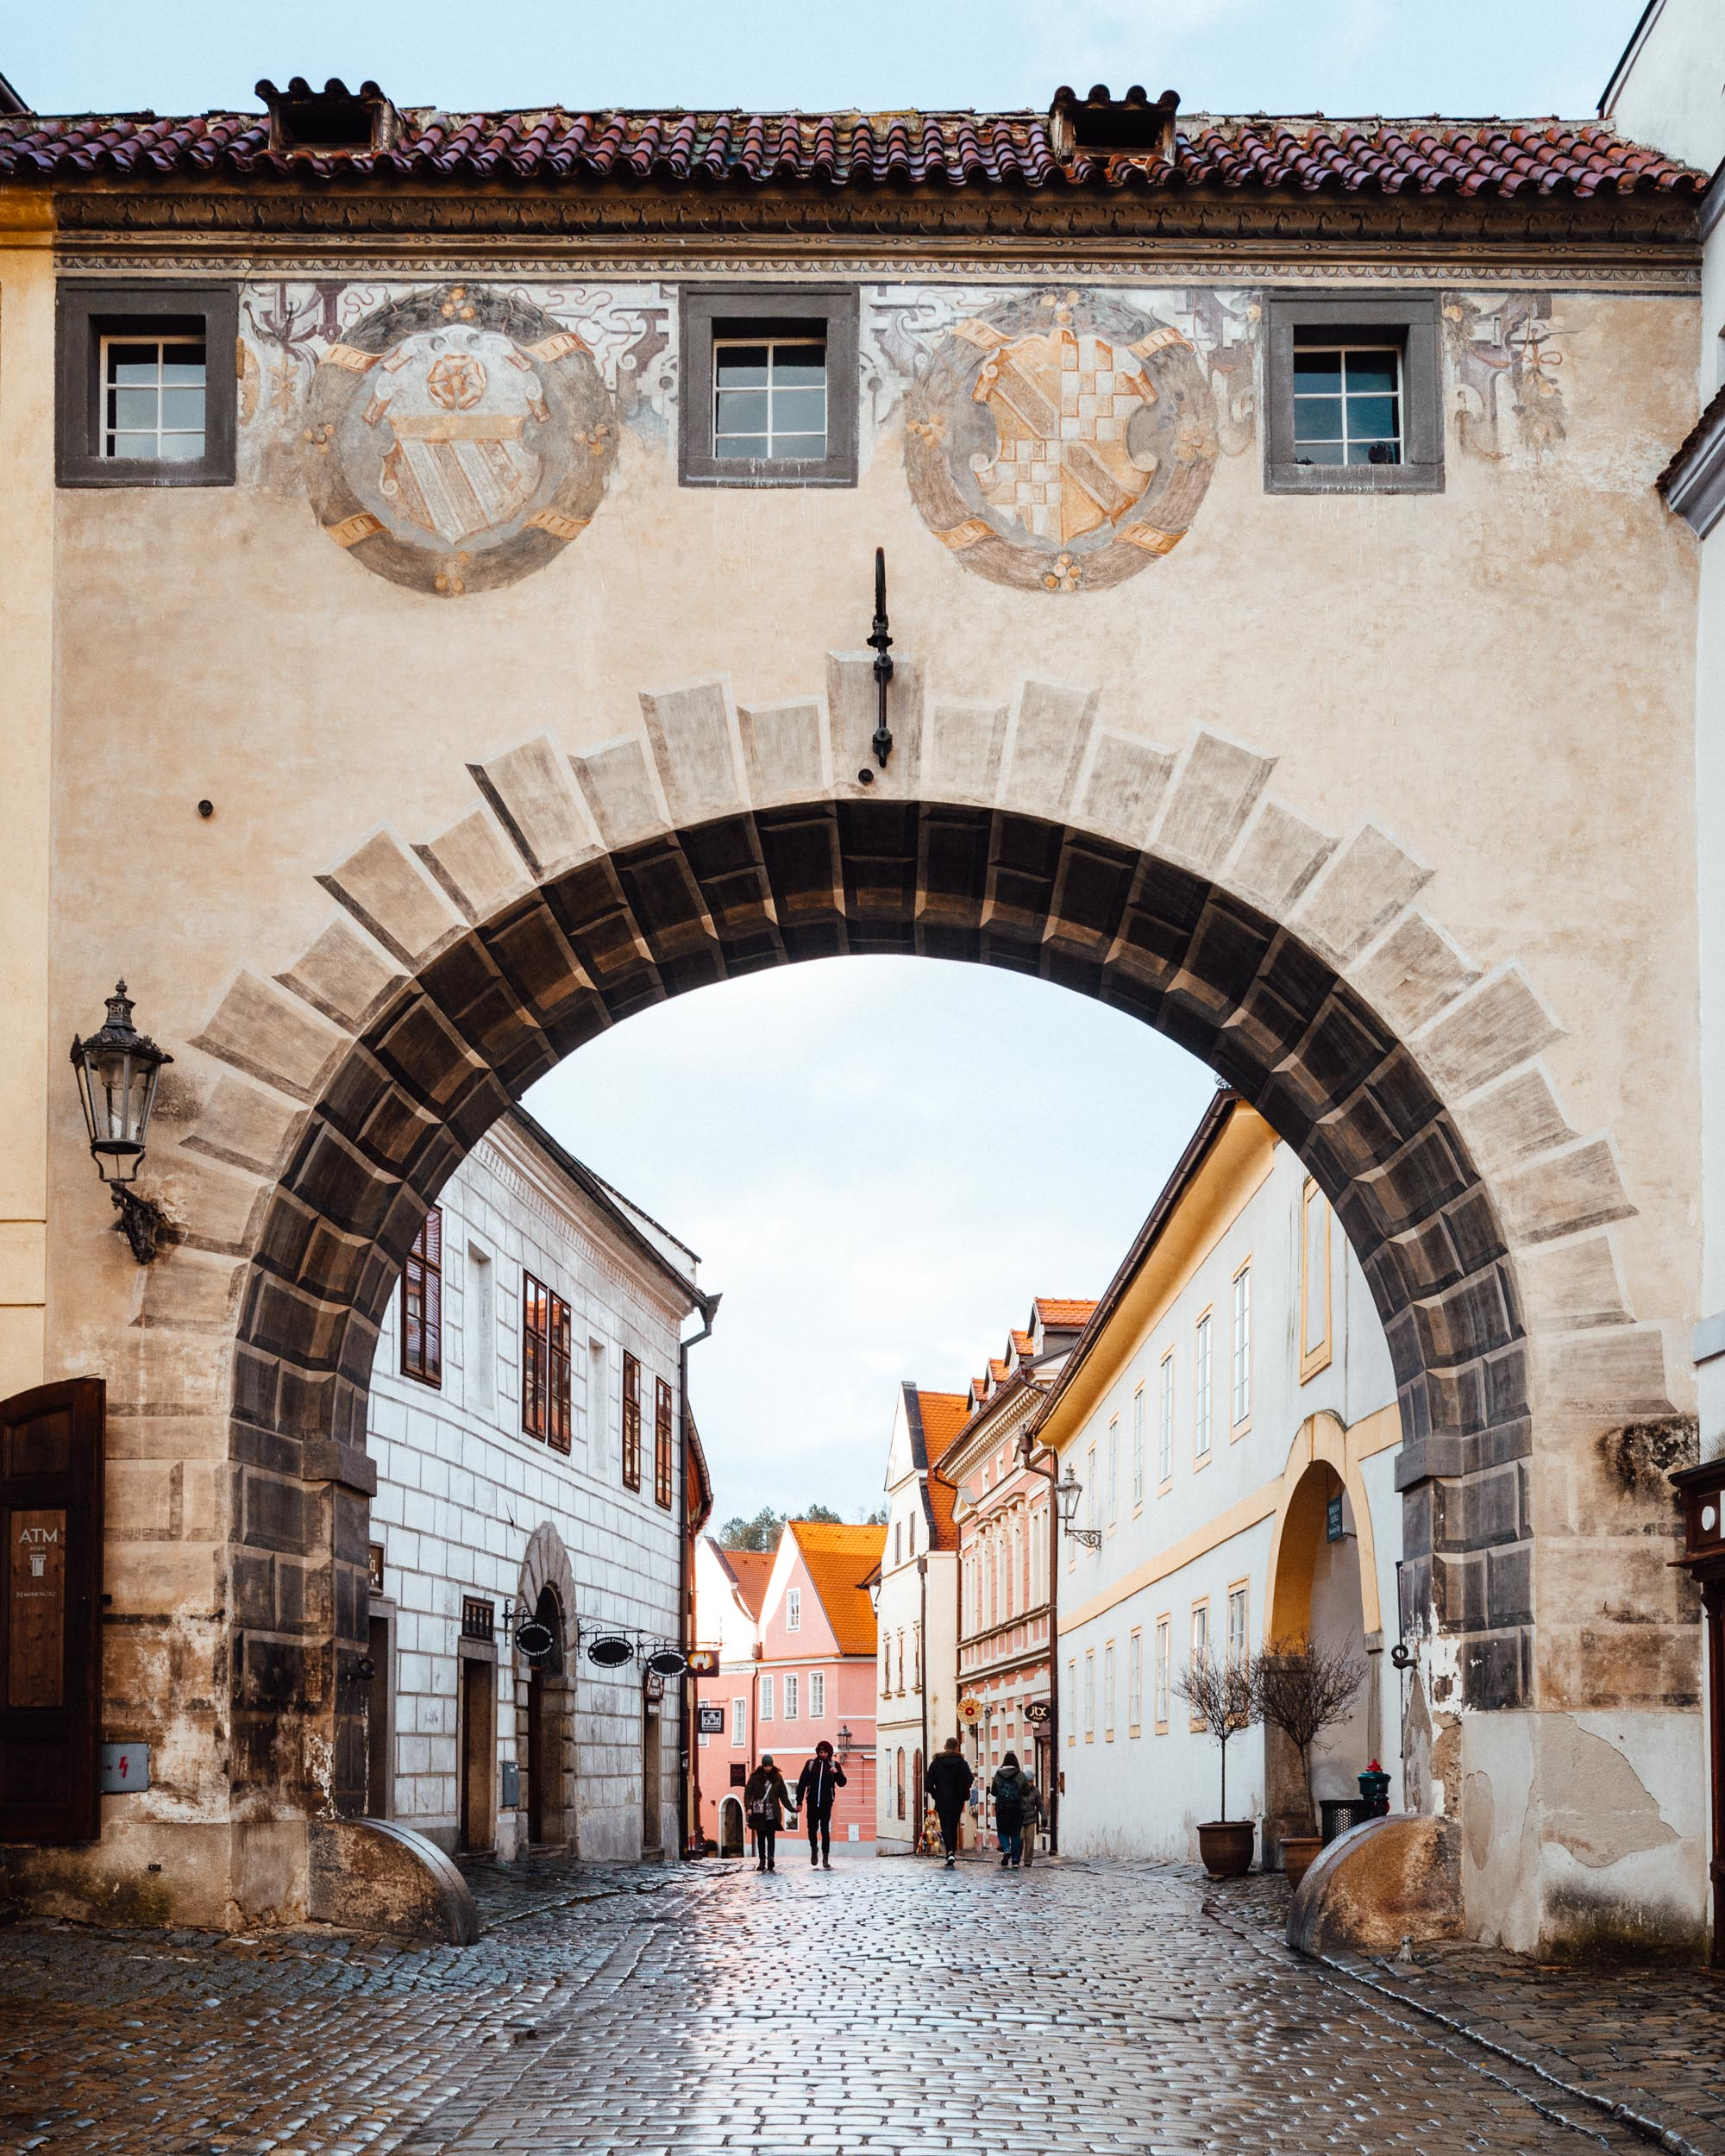 Medieval arch castle walls with people walking down the street of Cesky Krumlov Czech Republic